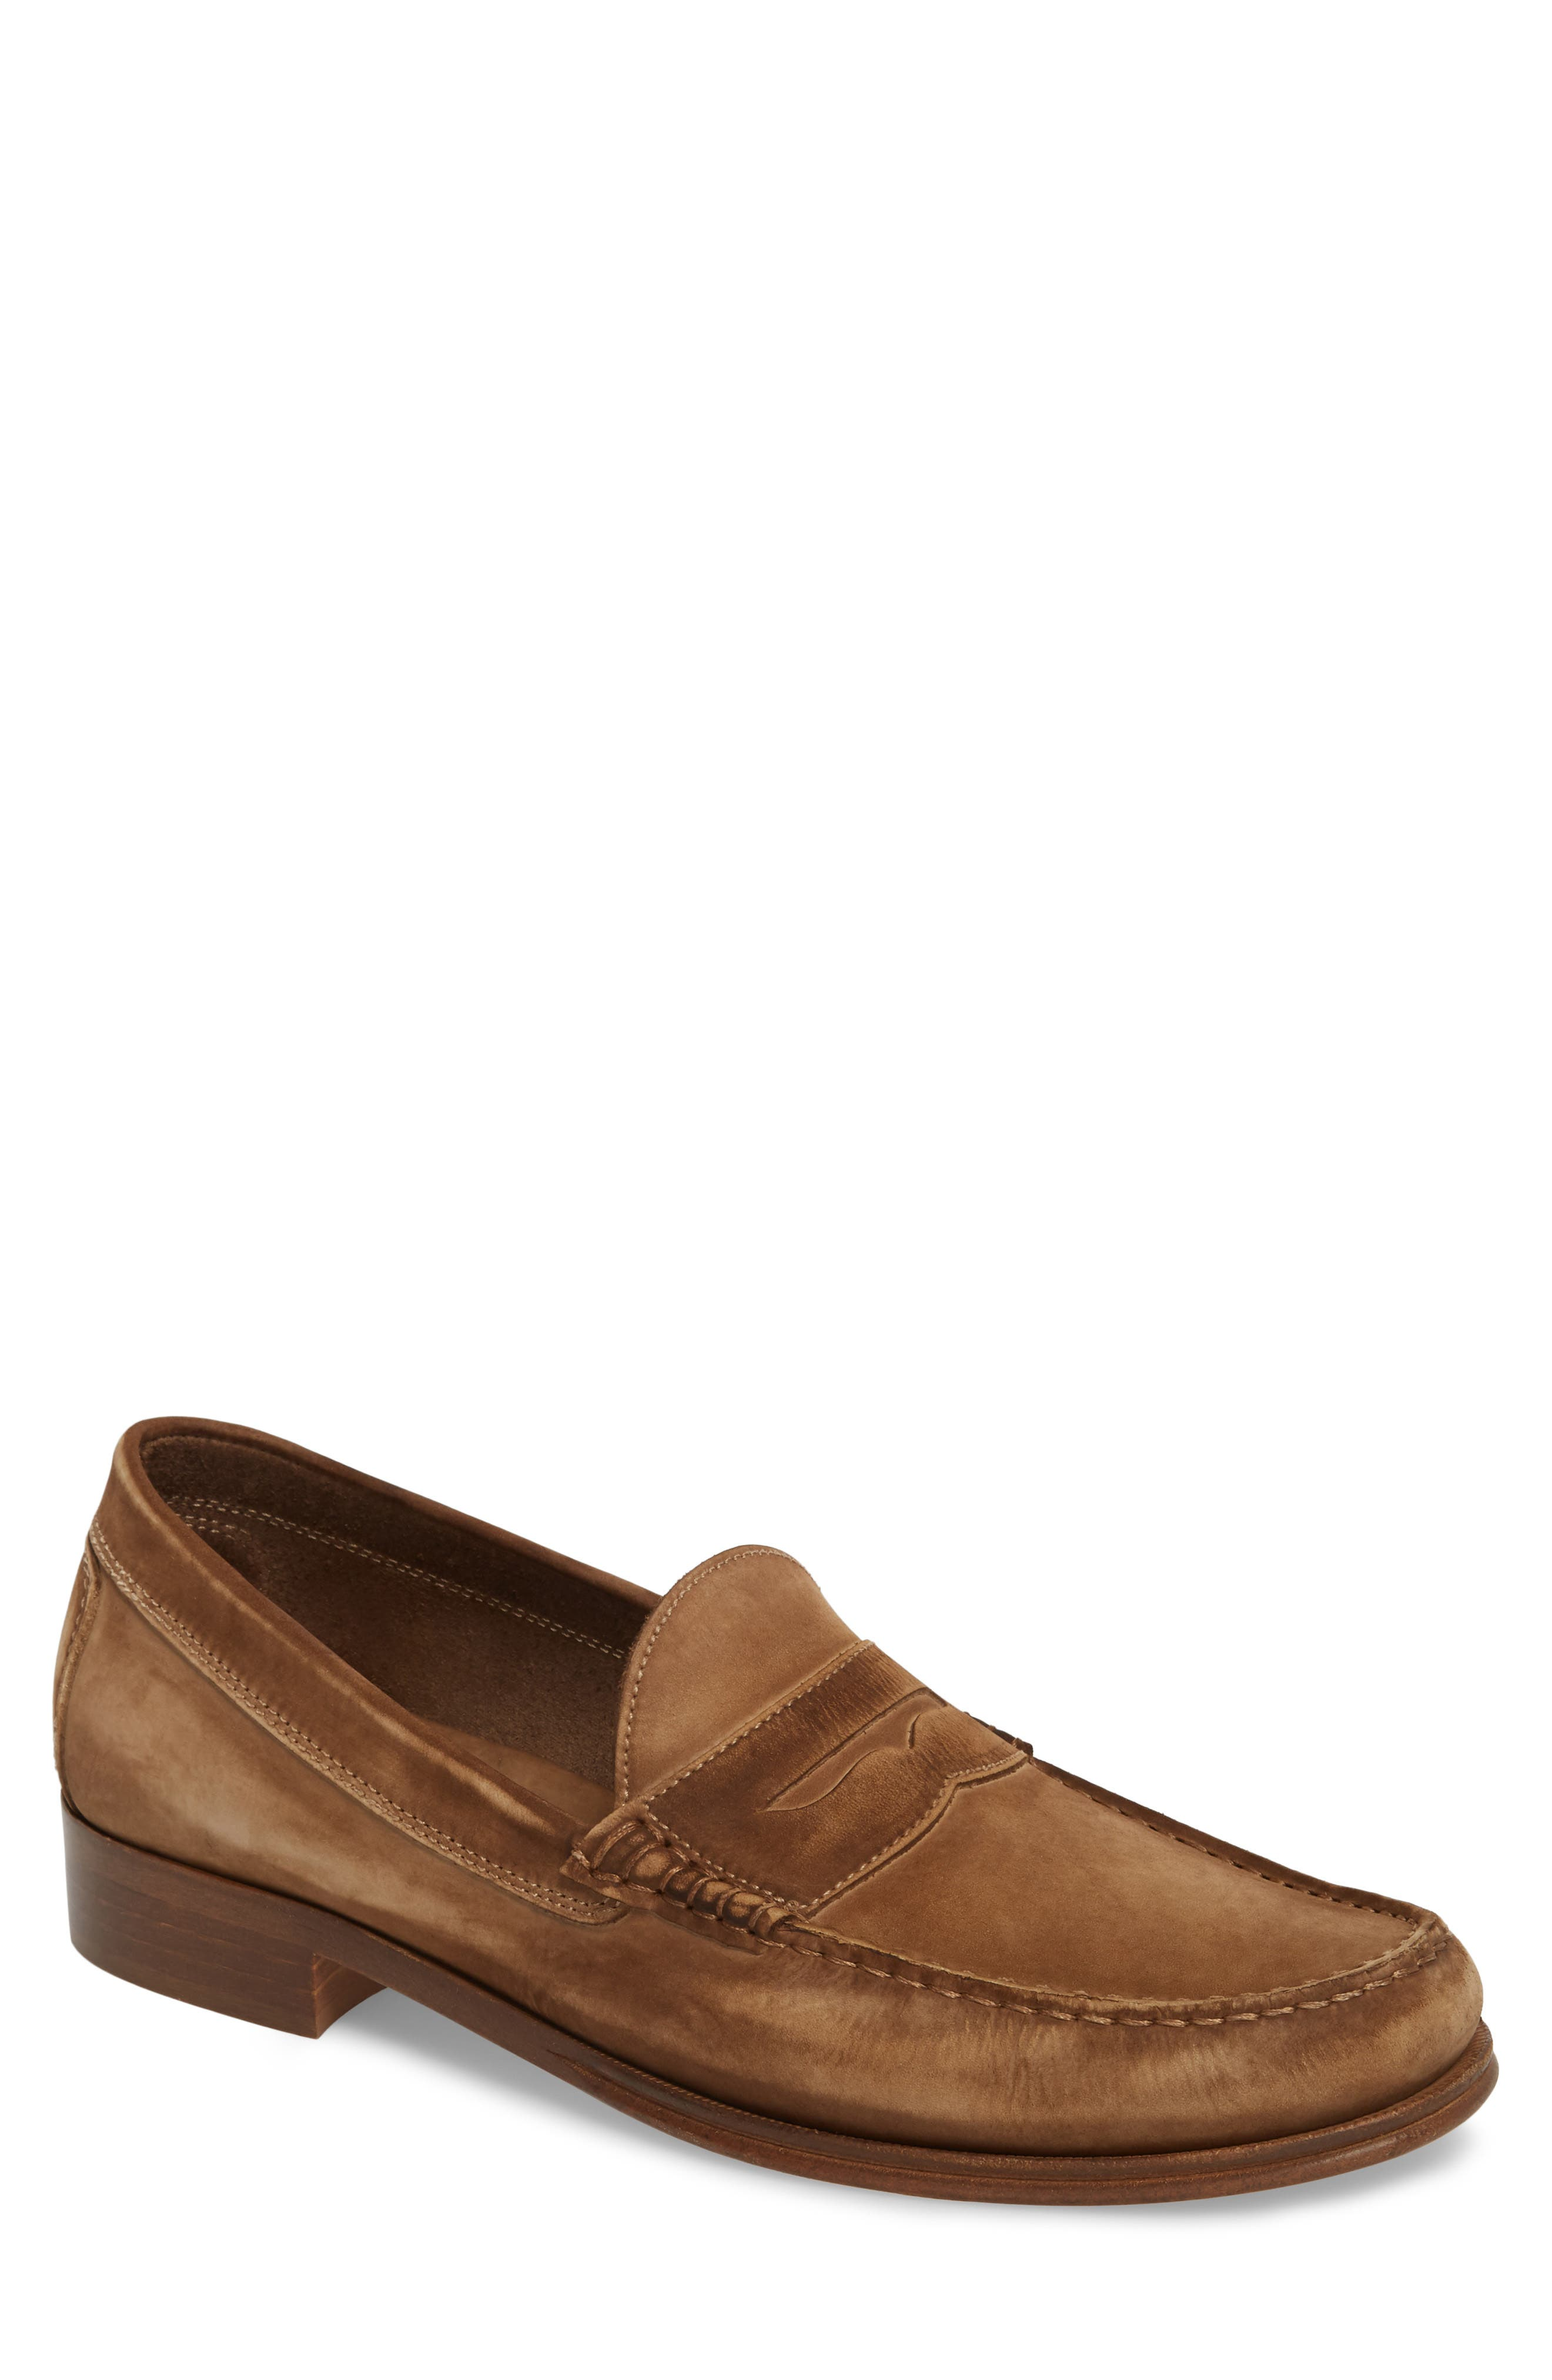 Nicola Penny Loafer,                         Main,                         color,